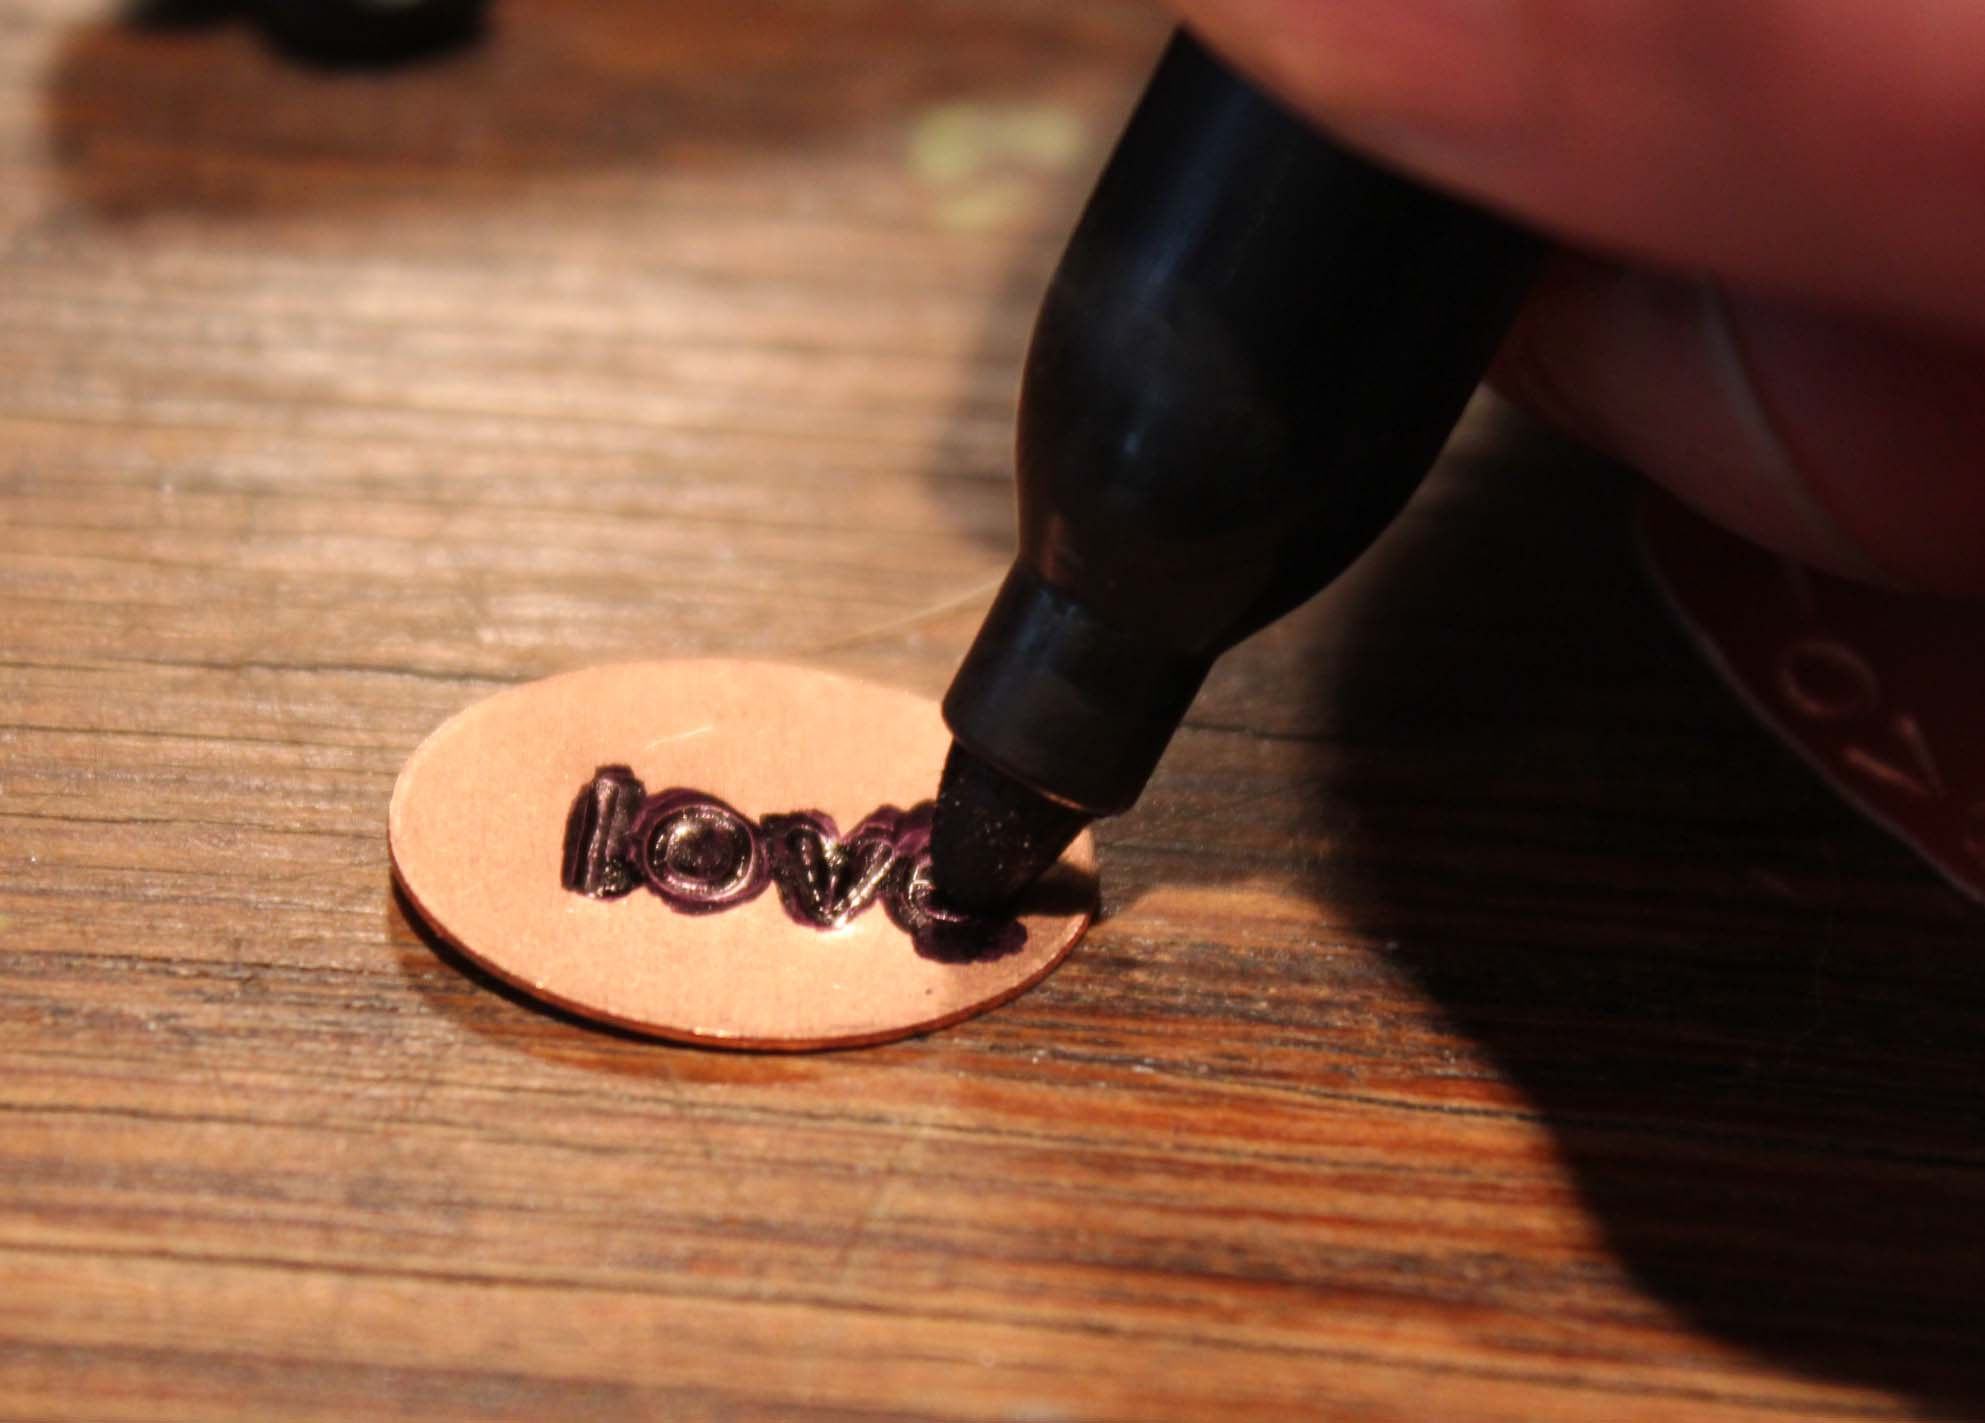 A permanent marker being used to darken the impressed letters